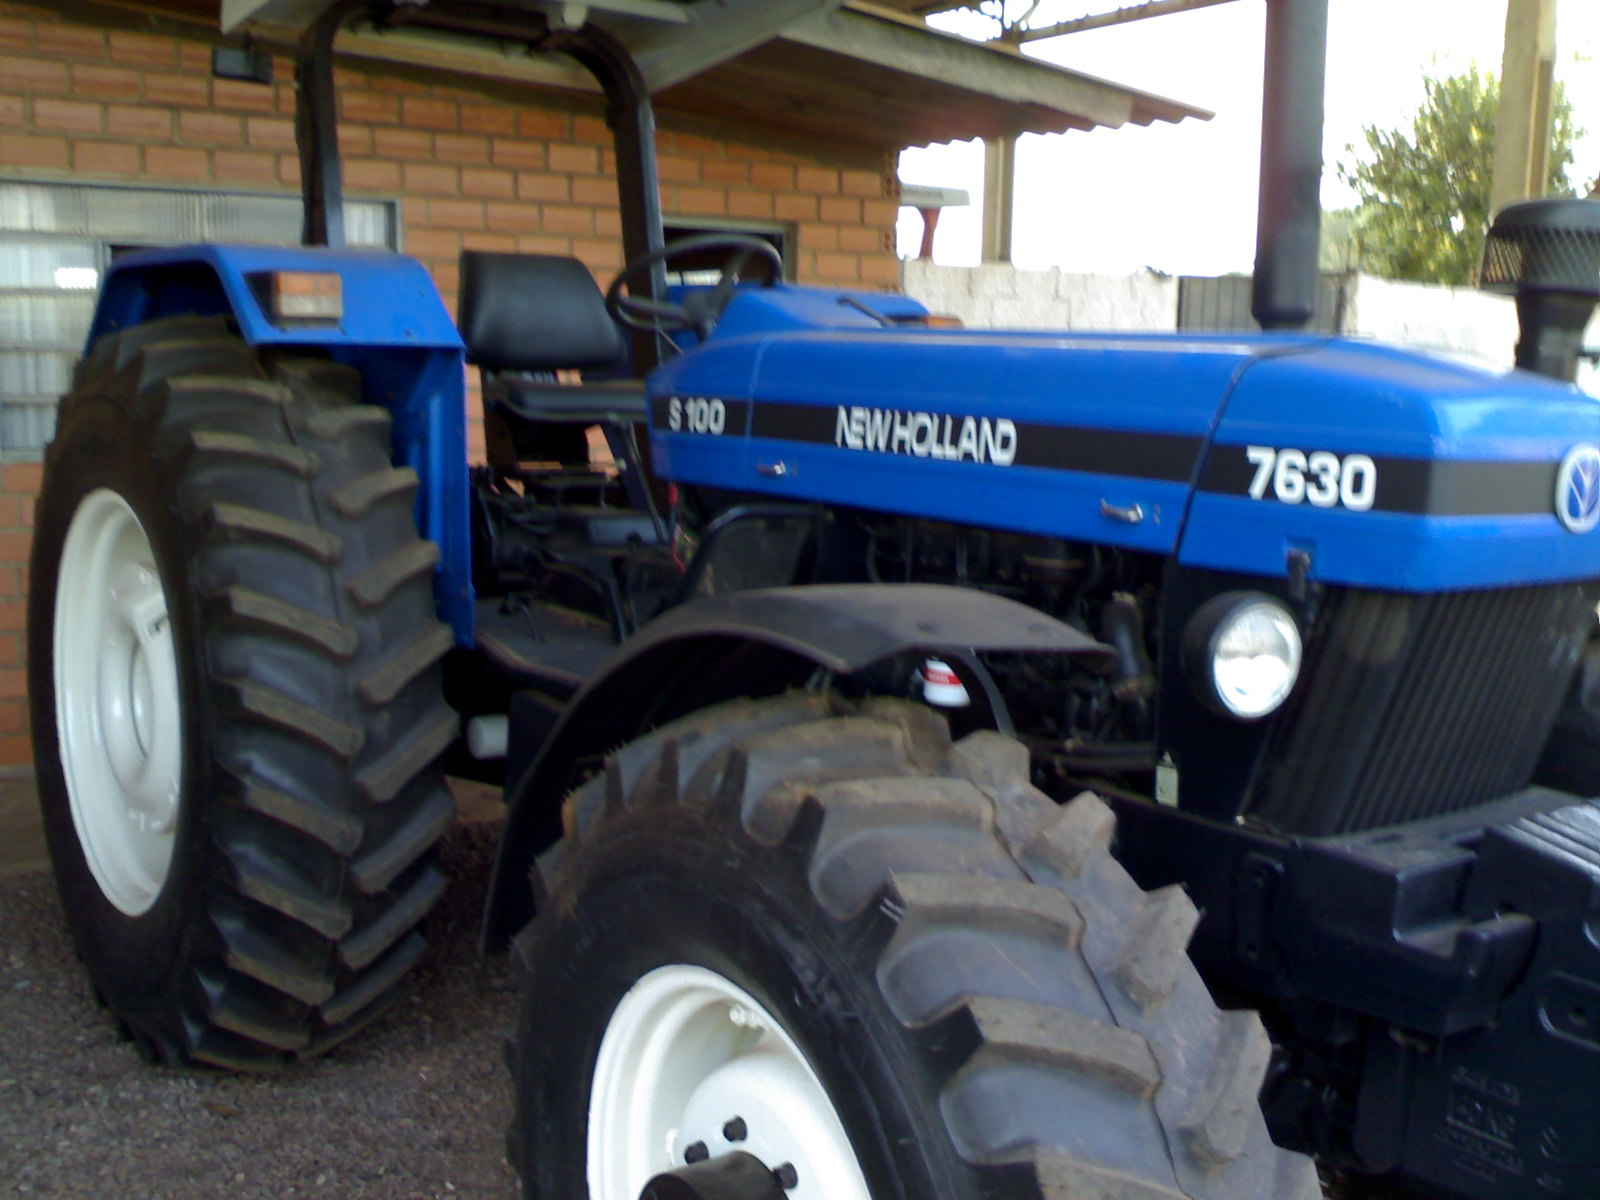 New holland 7630 photo - 1